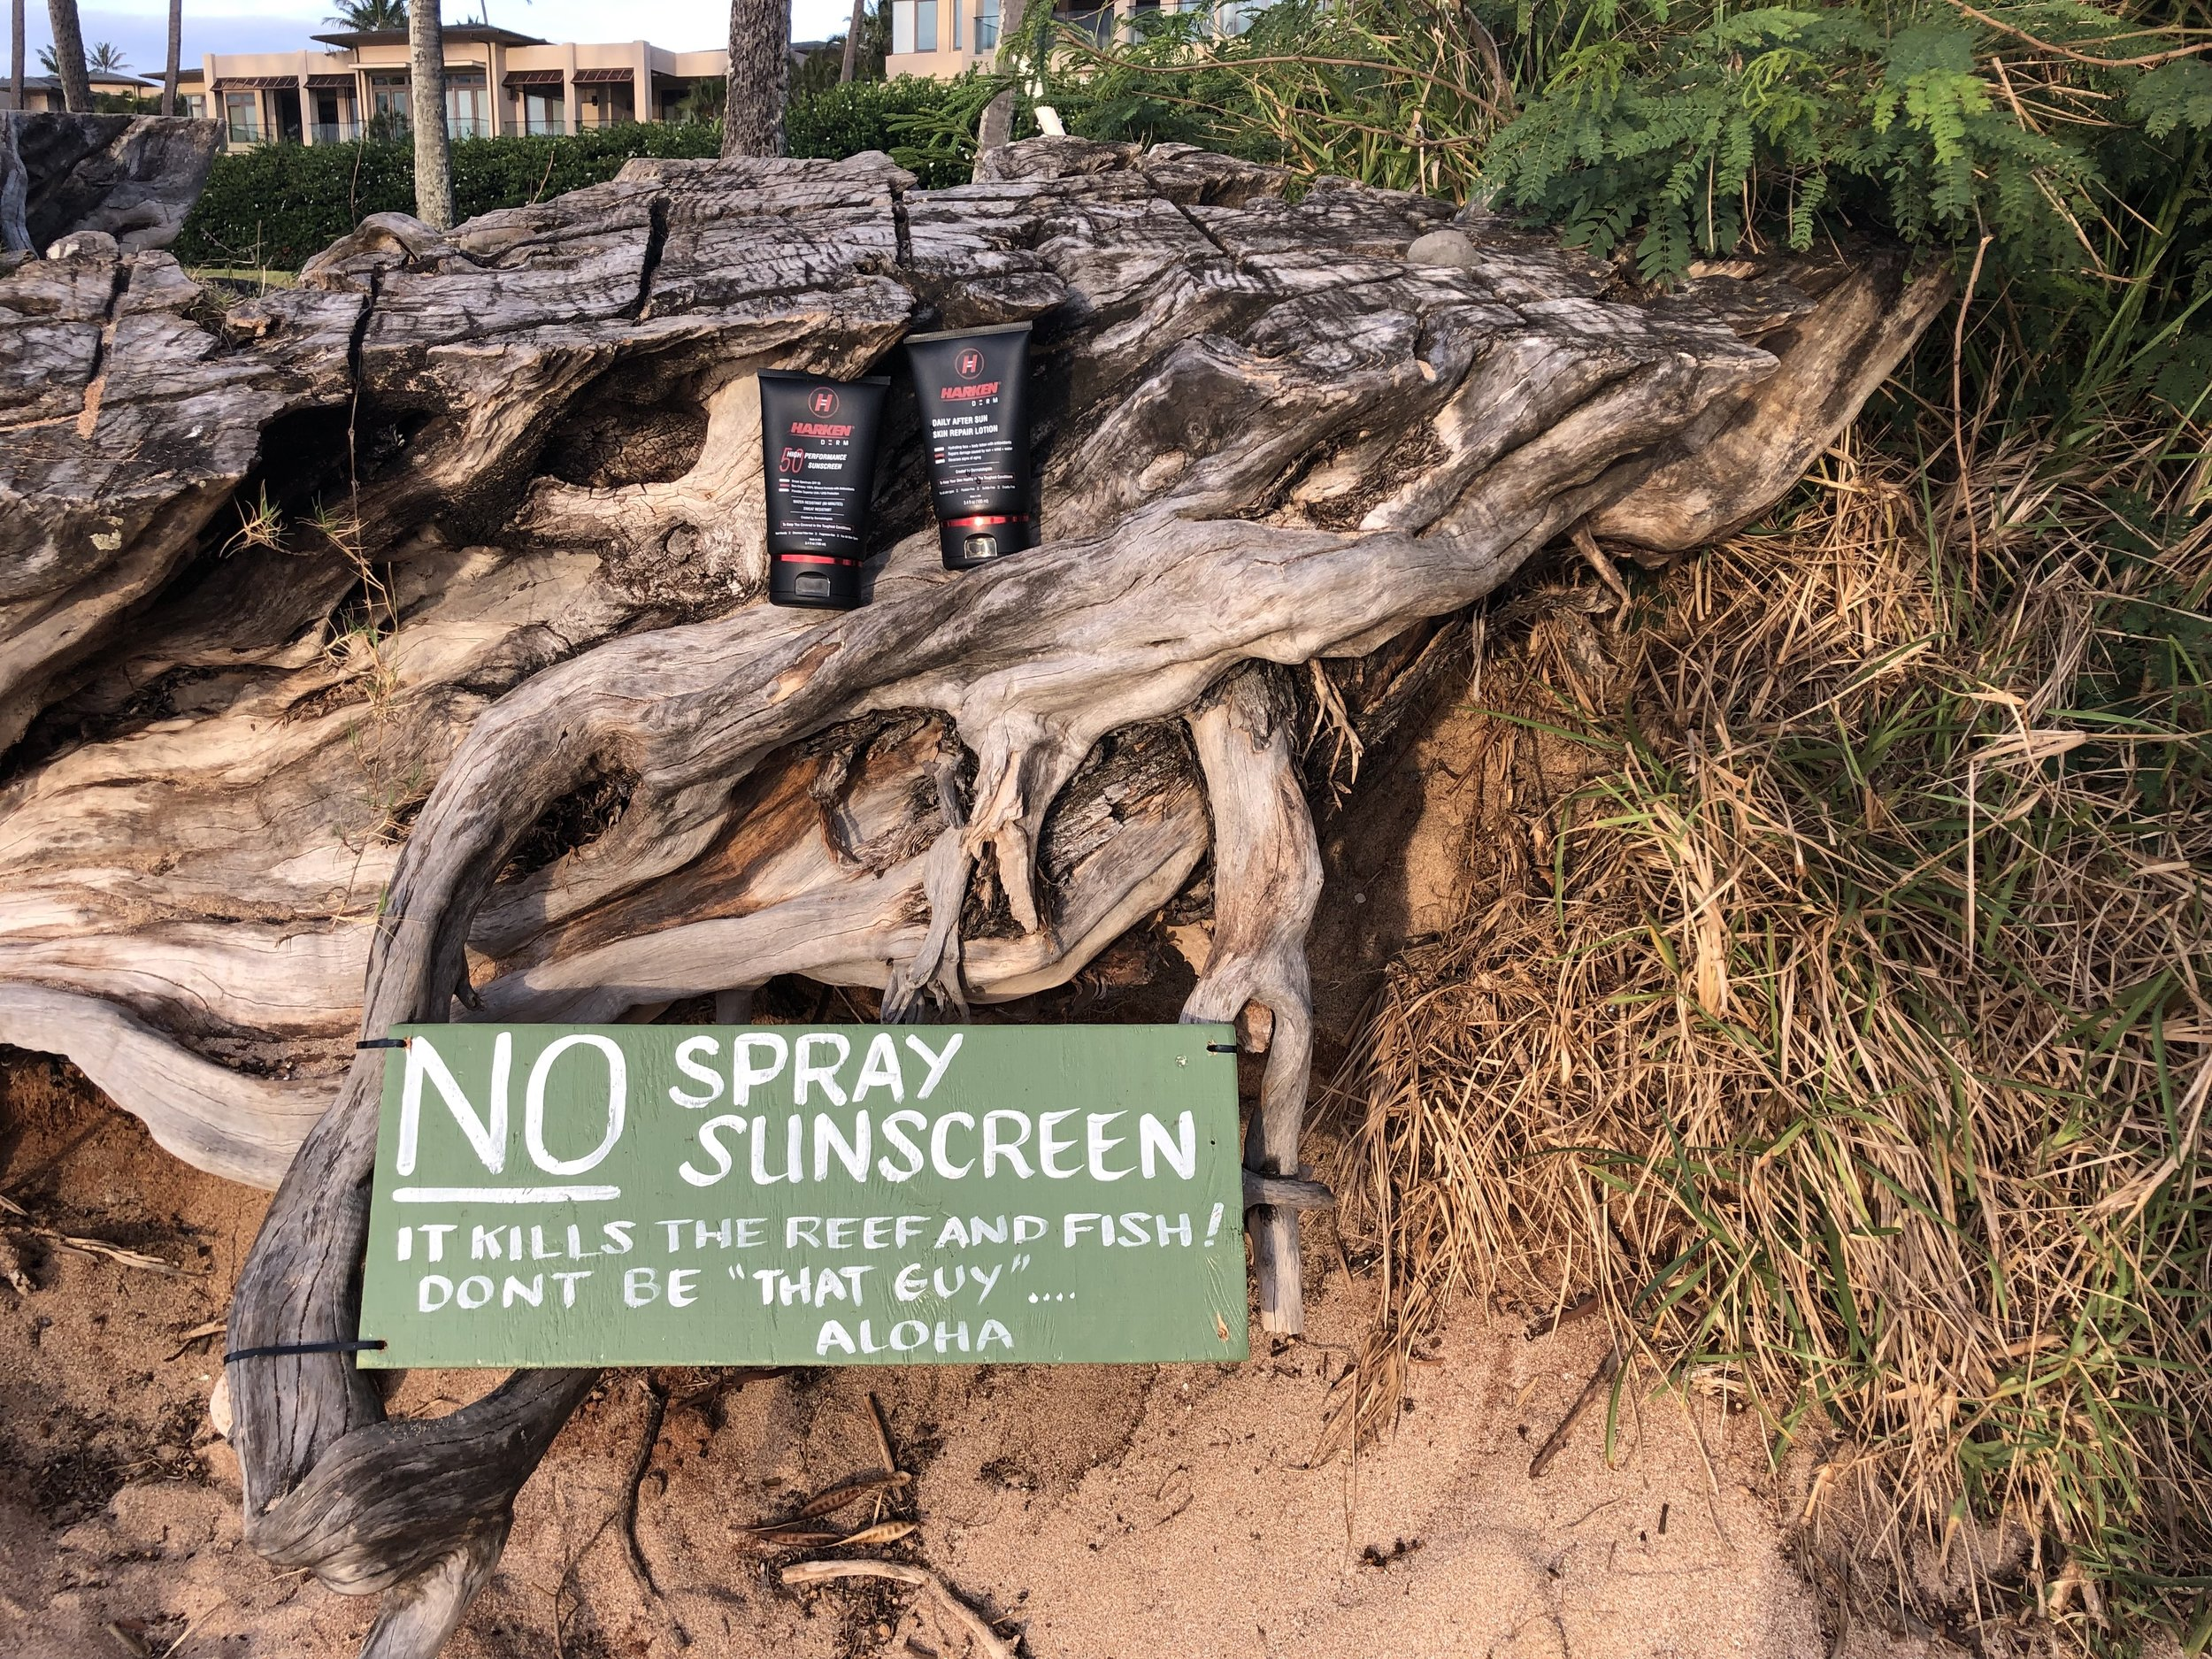 harken-derm-photo-maui-sunscreen-ban-oxybenzone-spray-safe-sunscreen-kapalua-bay-maui-04-26-2019.jpg